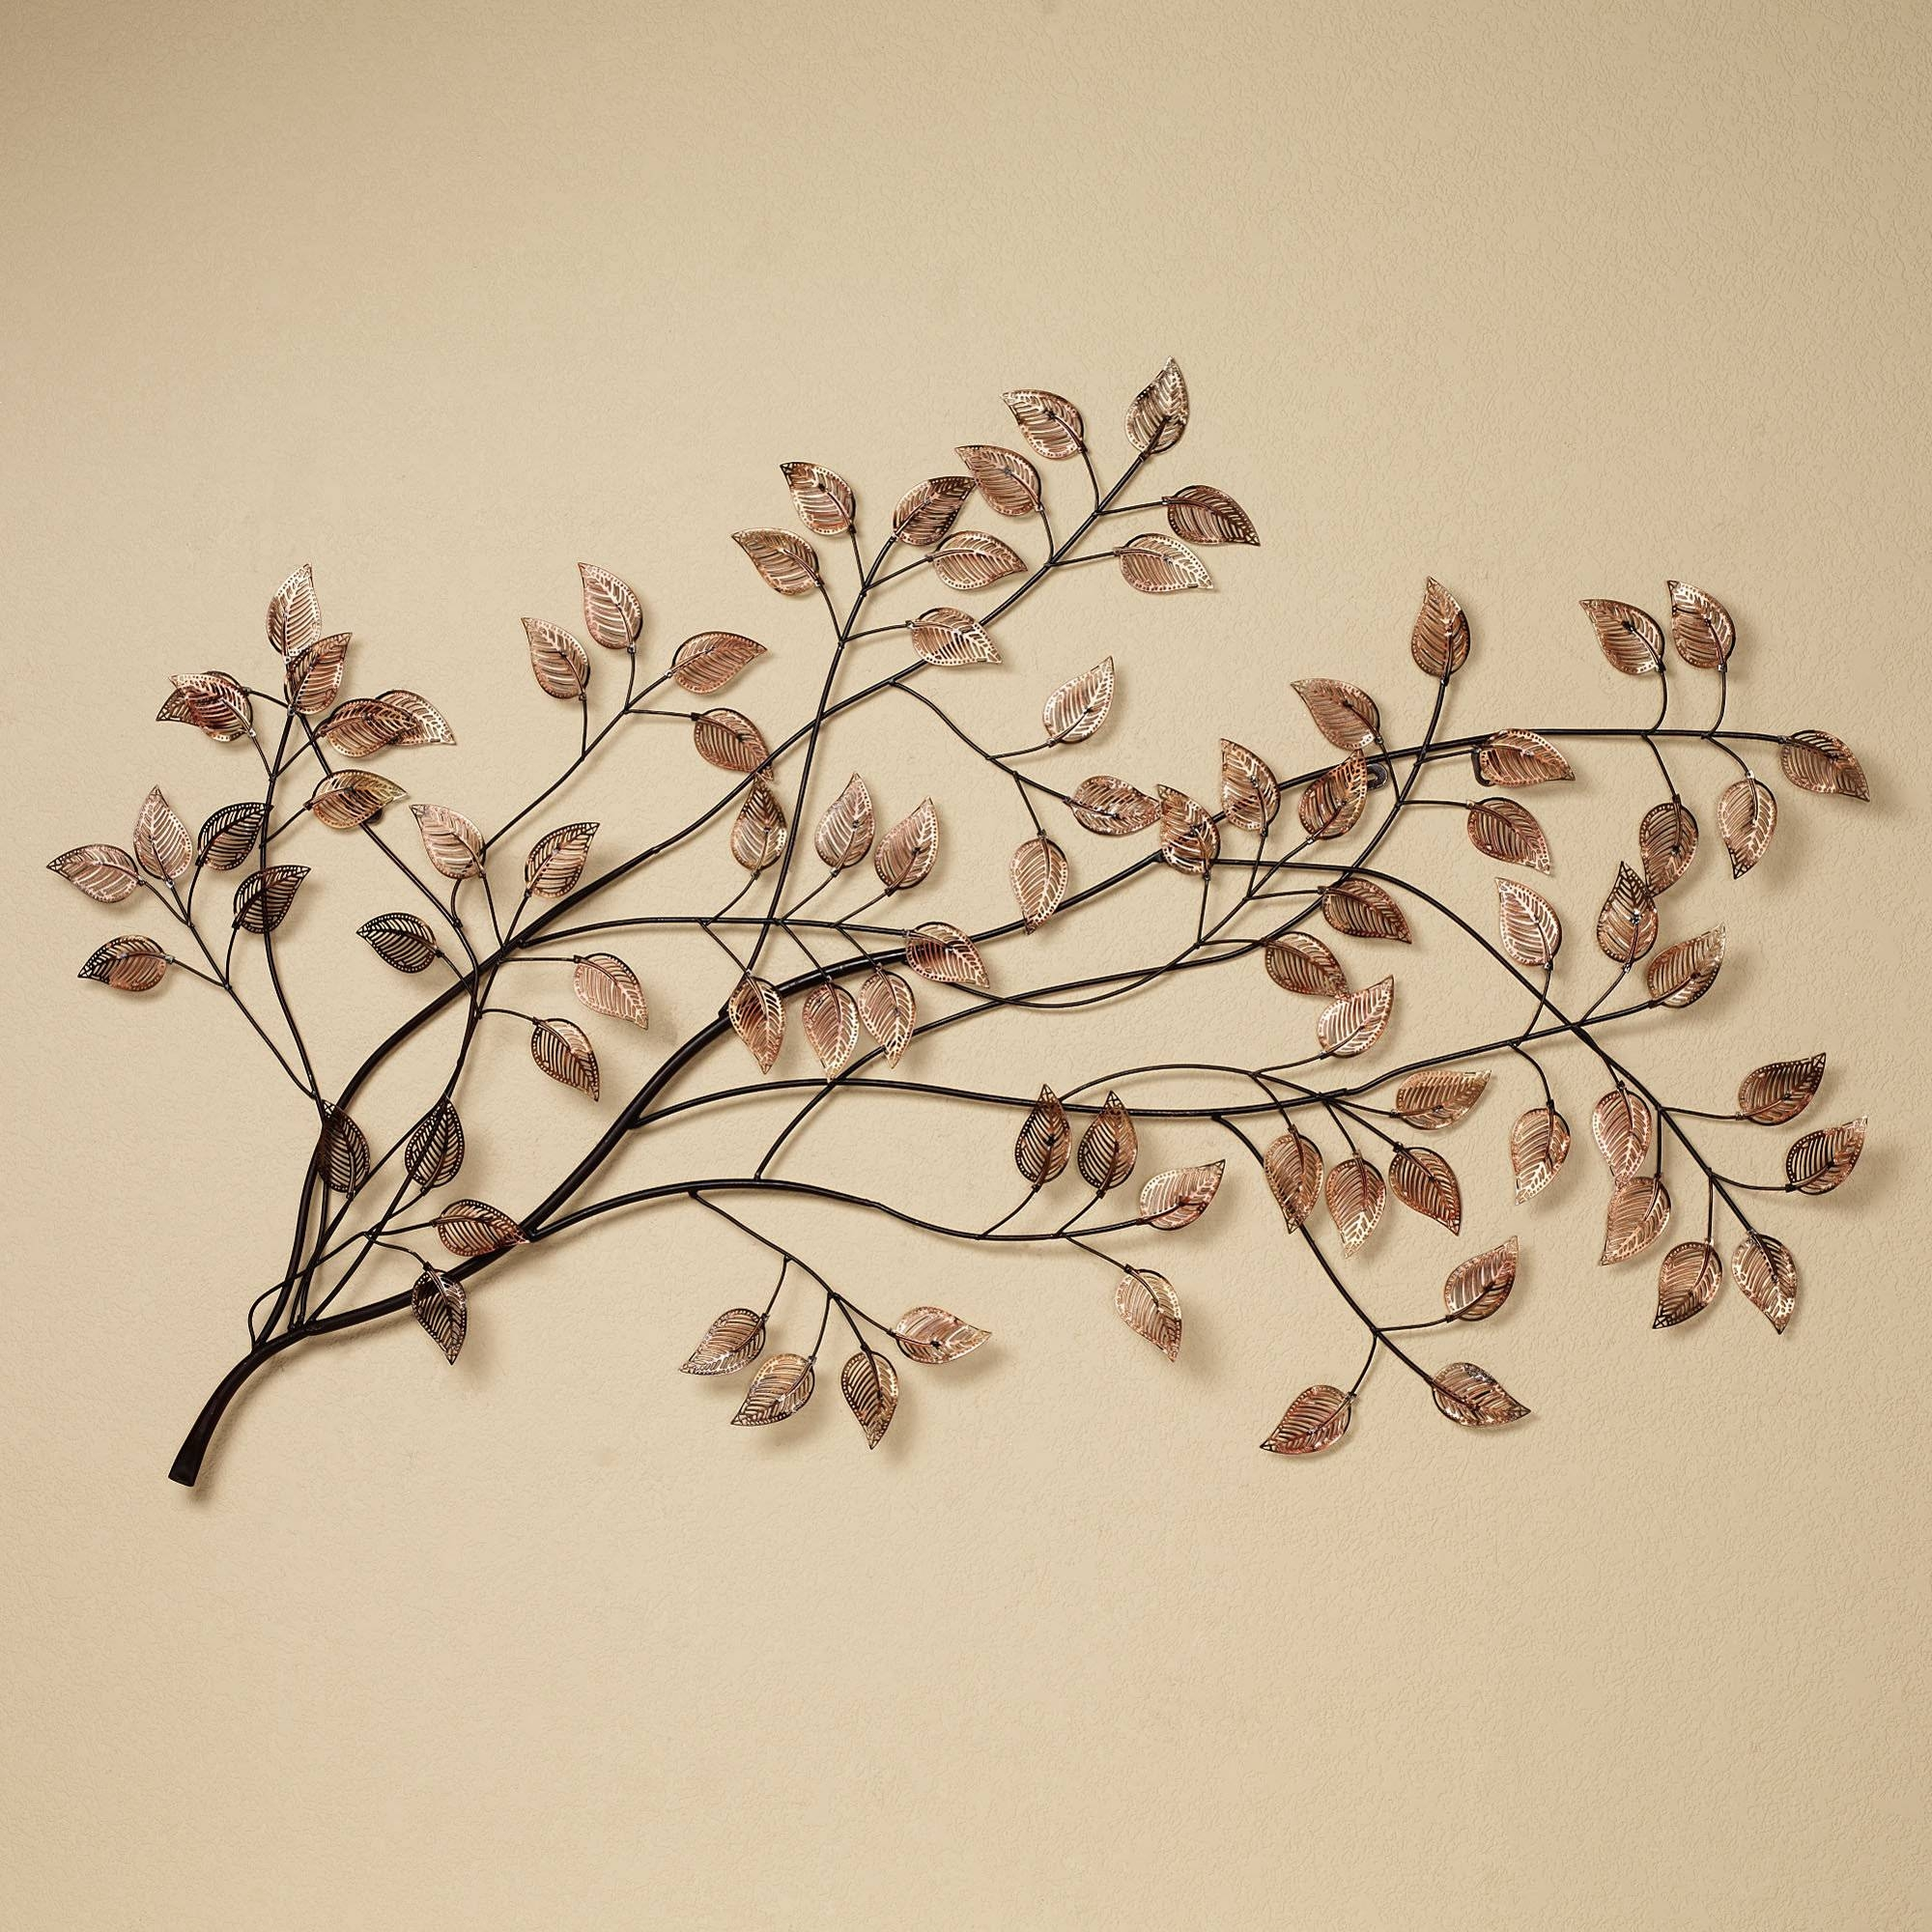 Awesome Natural Plant Design For Metal Wall Art And Decor Leaves Regarding 2018 Leaf Metal Wall Art (View 4 of 20)